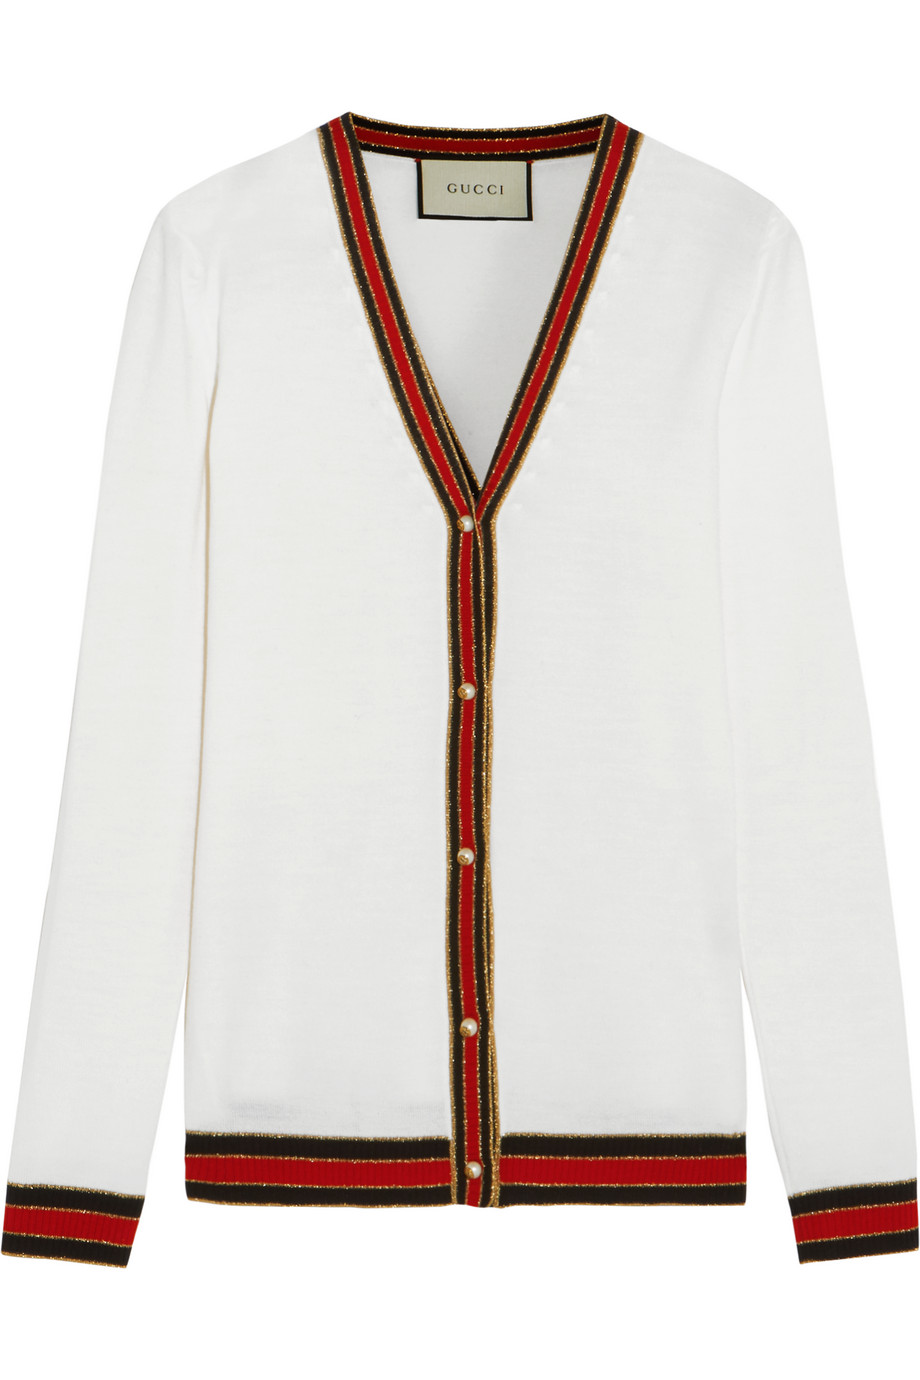 Gucci Striped Wool Cardigan, Off-White, Women's, Size: L